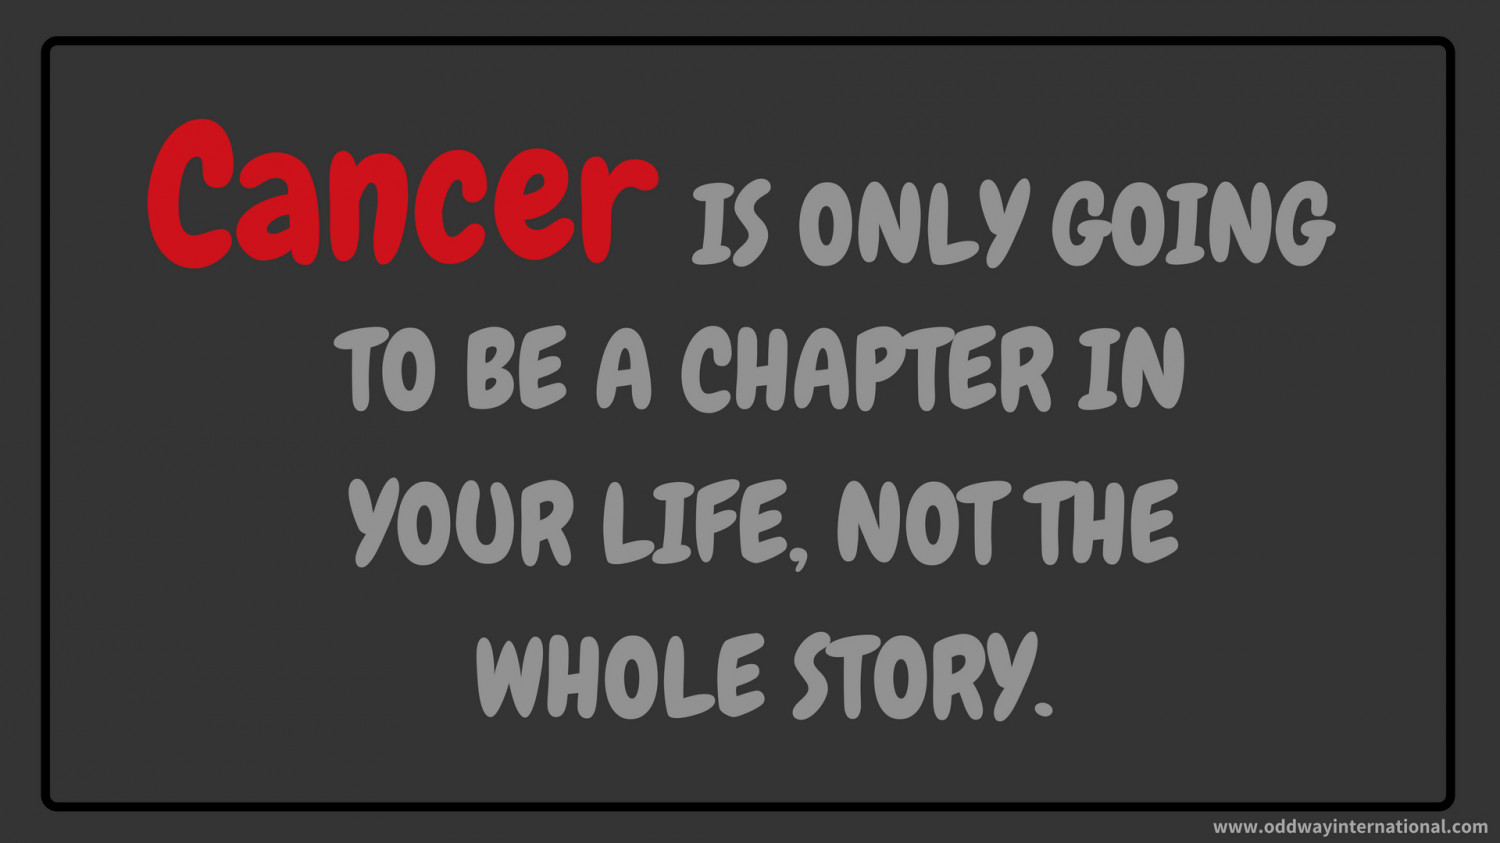 Motivational and Inspirational Quotes For Cancer Patients ... Infographic